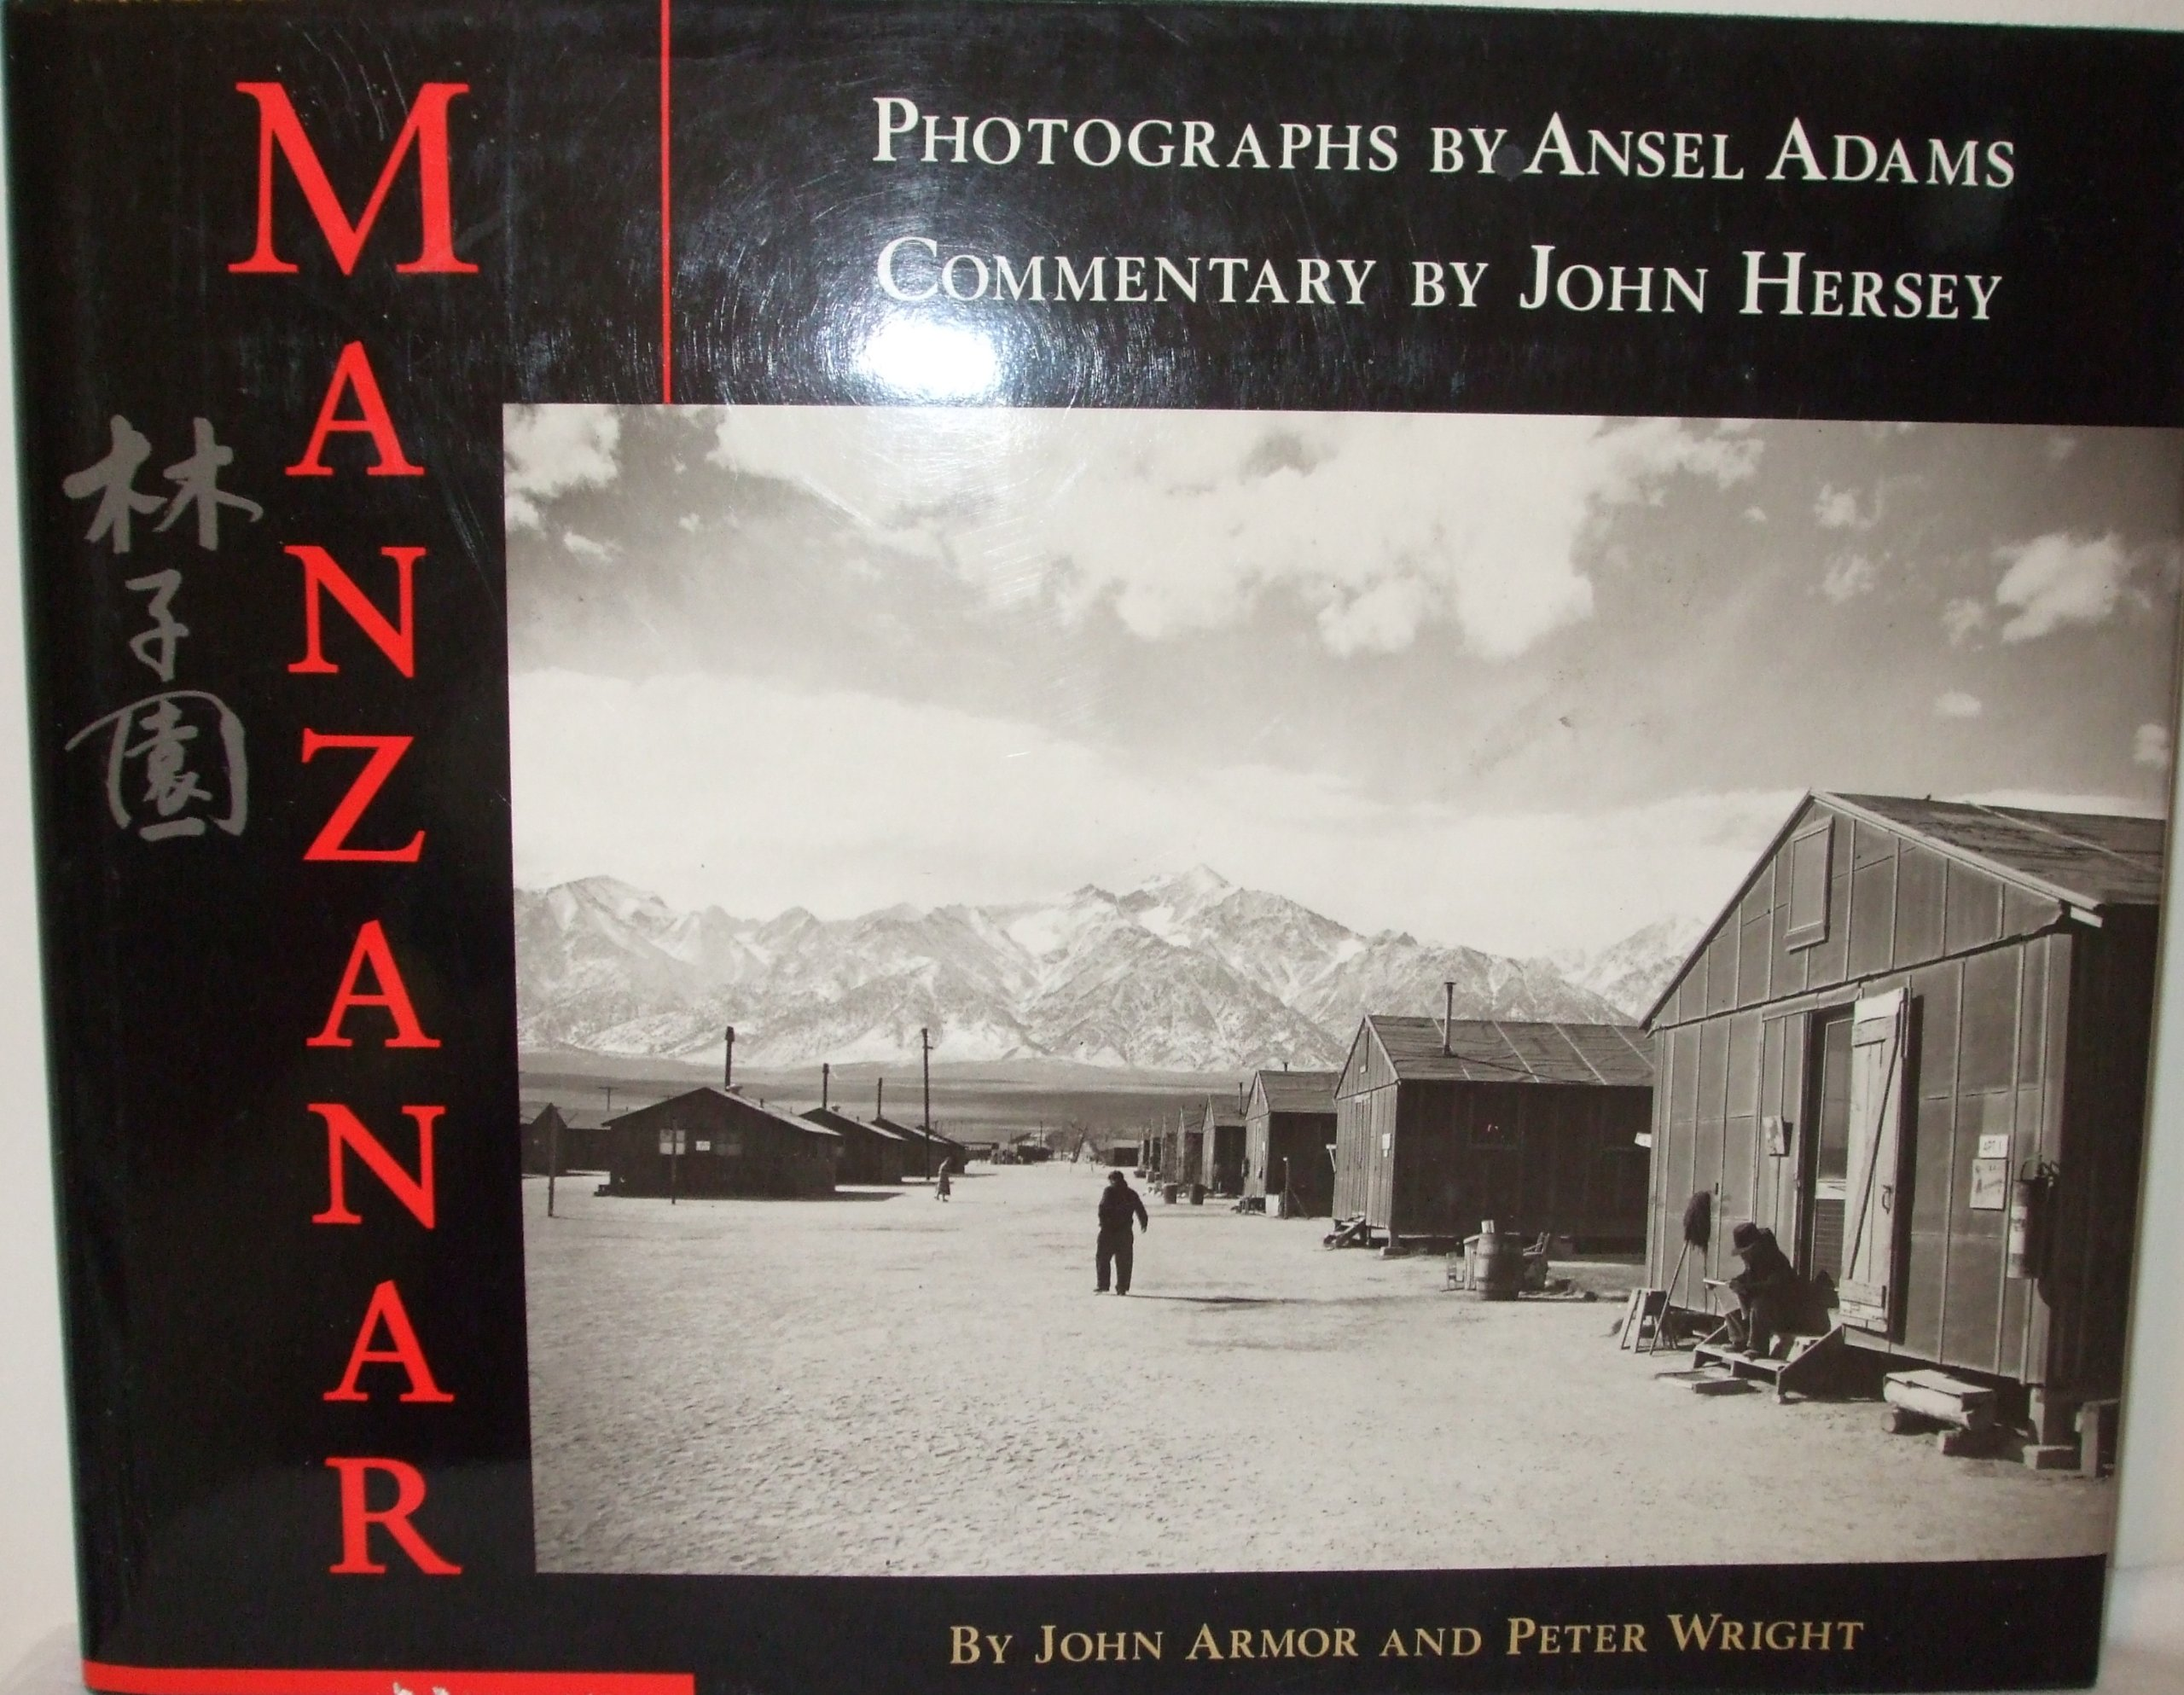 manzanar photography by ansel adams commentary by john hersey